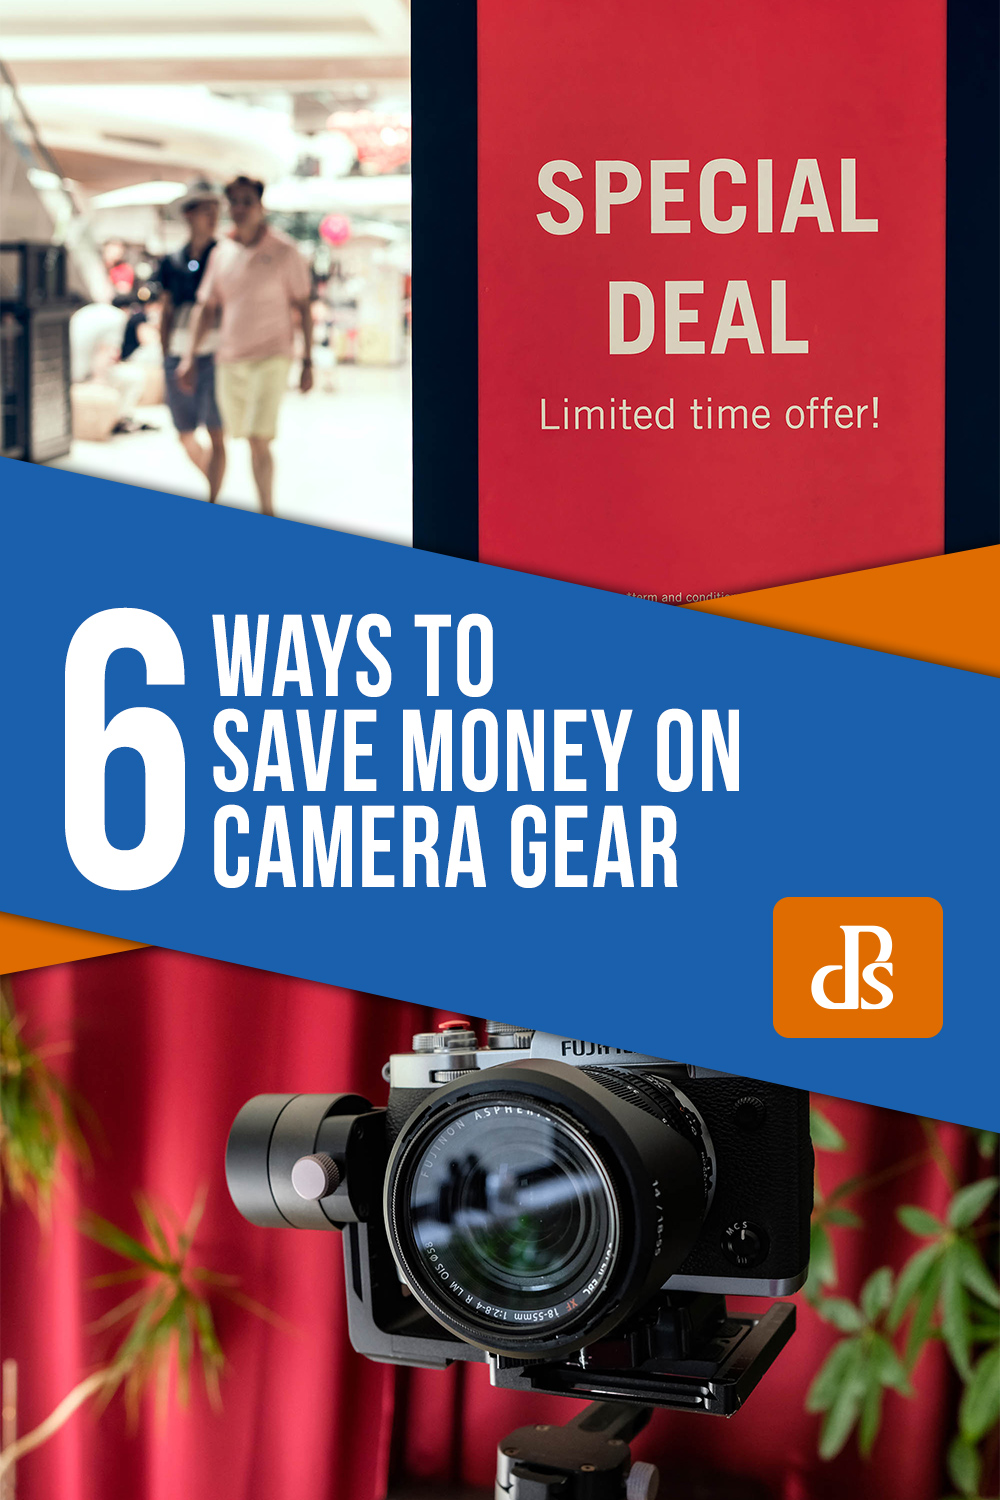 6 ways to save money on camera gear